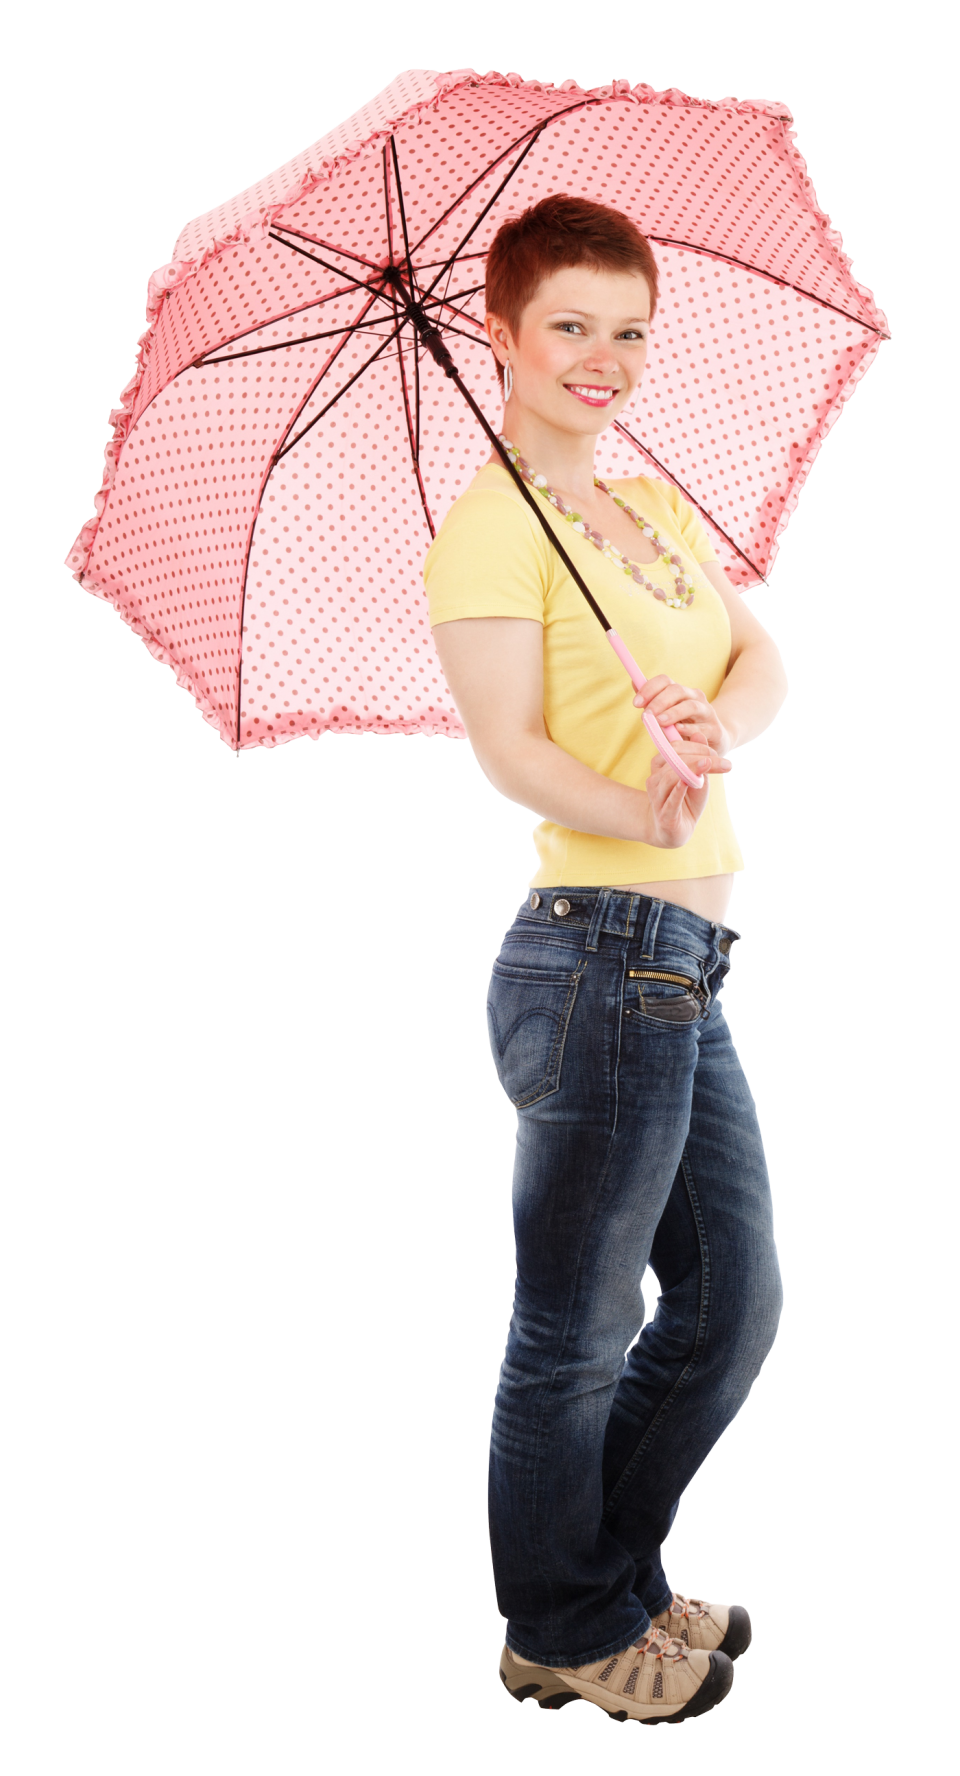 Young Happy Woman Standing With Umbrella PNG Image